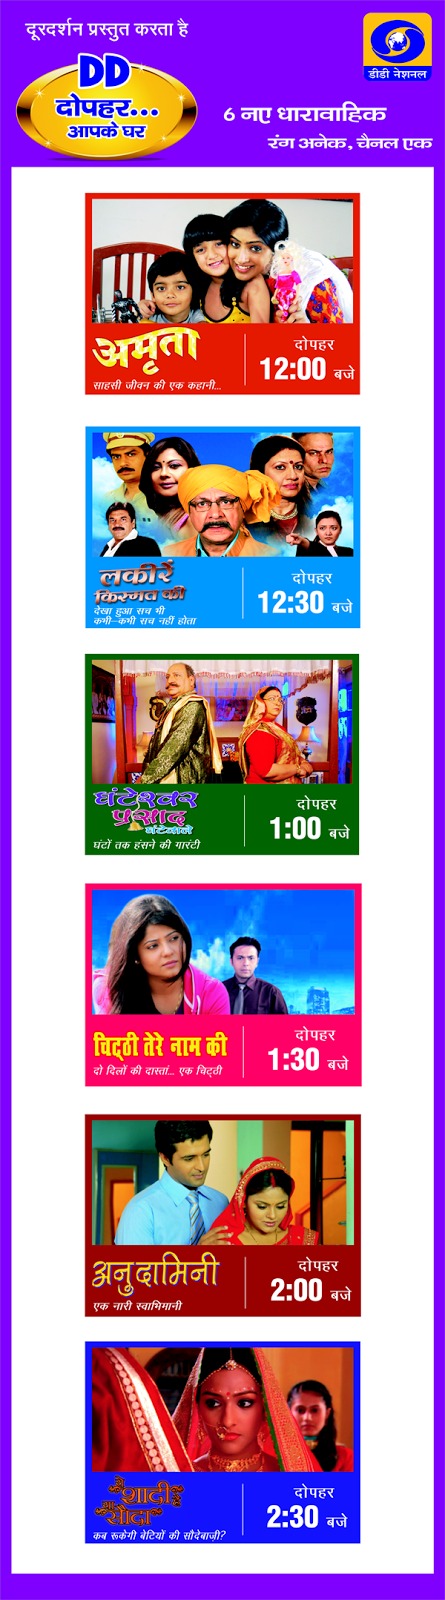 These programs will be telecast between 12:00 PM to 3:00 PM at noon time.